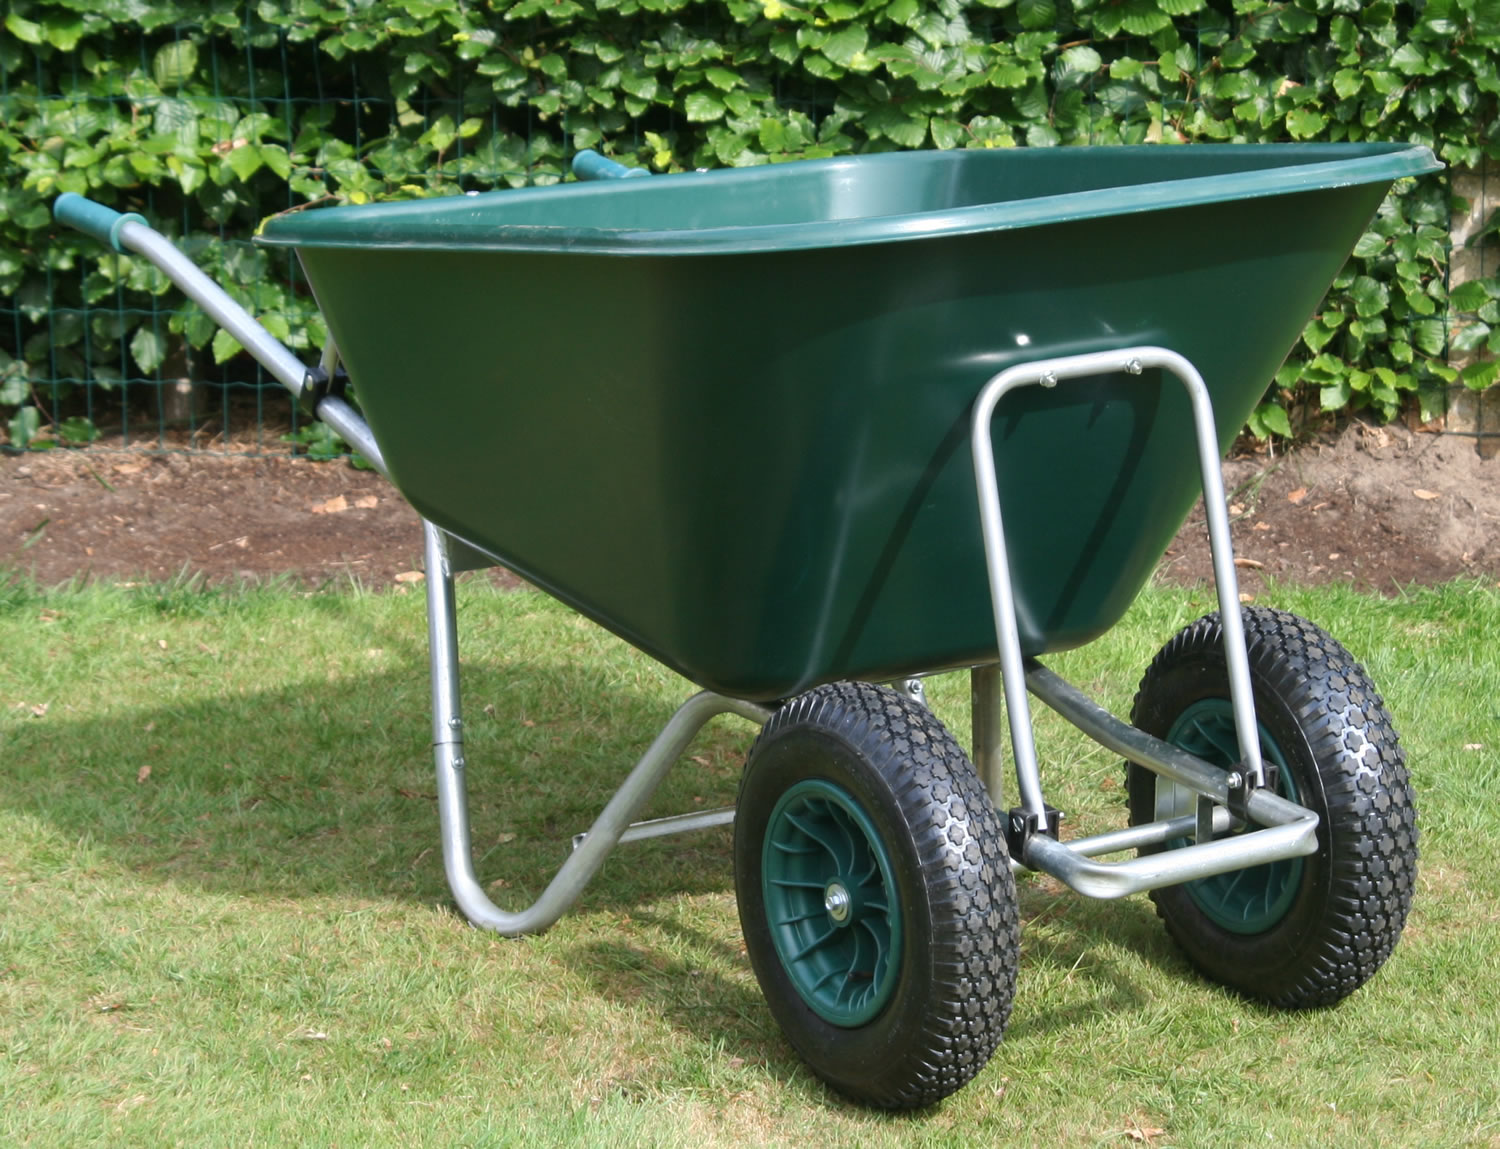 Garden wheelbarrow samson 200 to 275ltr 159 for Gardening 4 less reviews